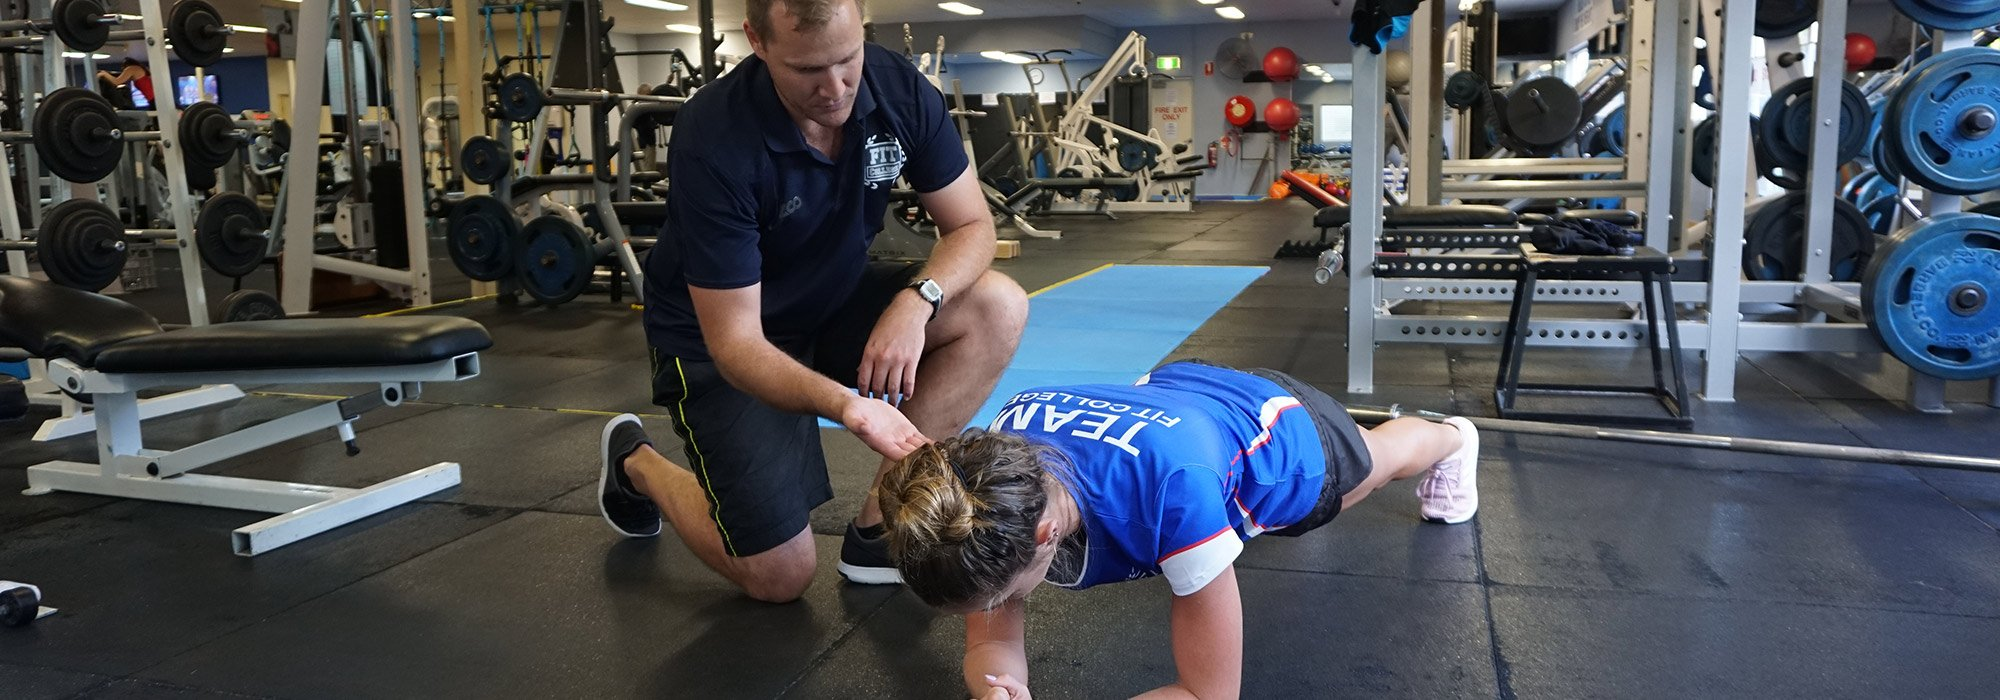 Become A Personal Trainer Fit College